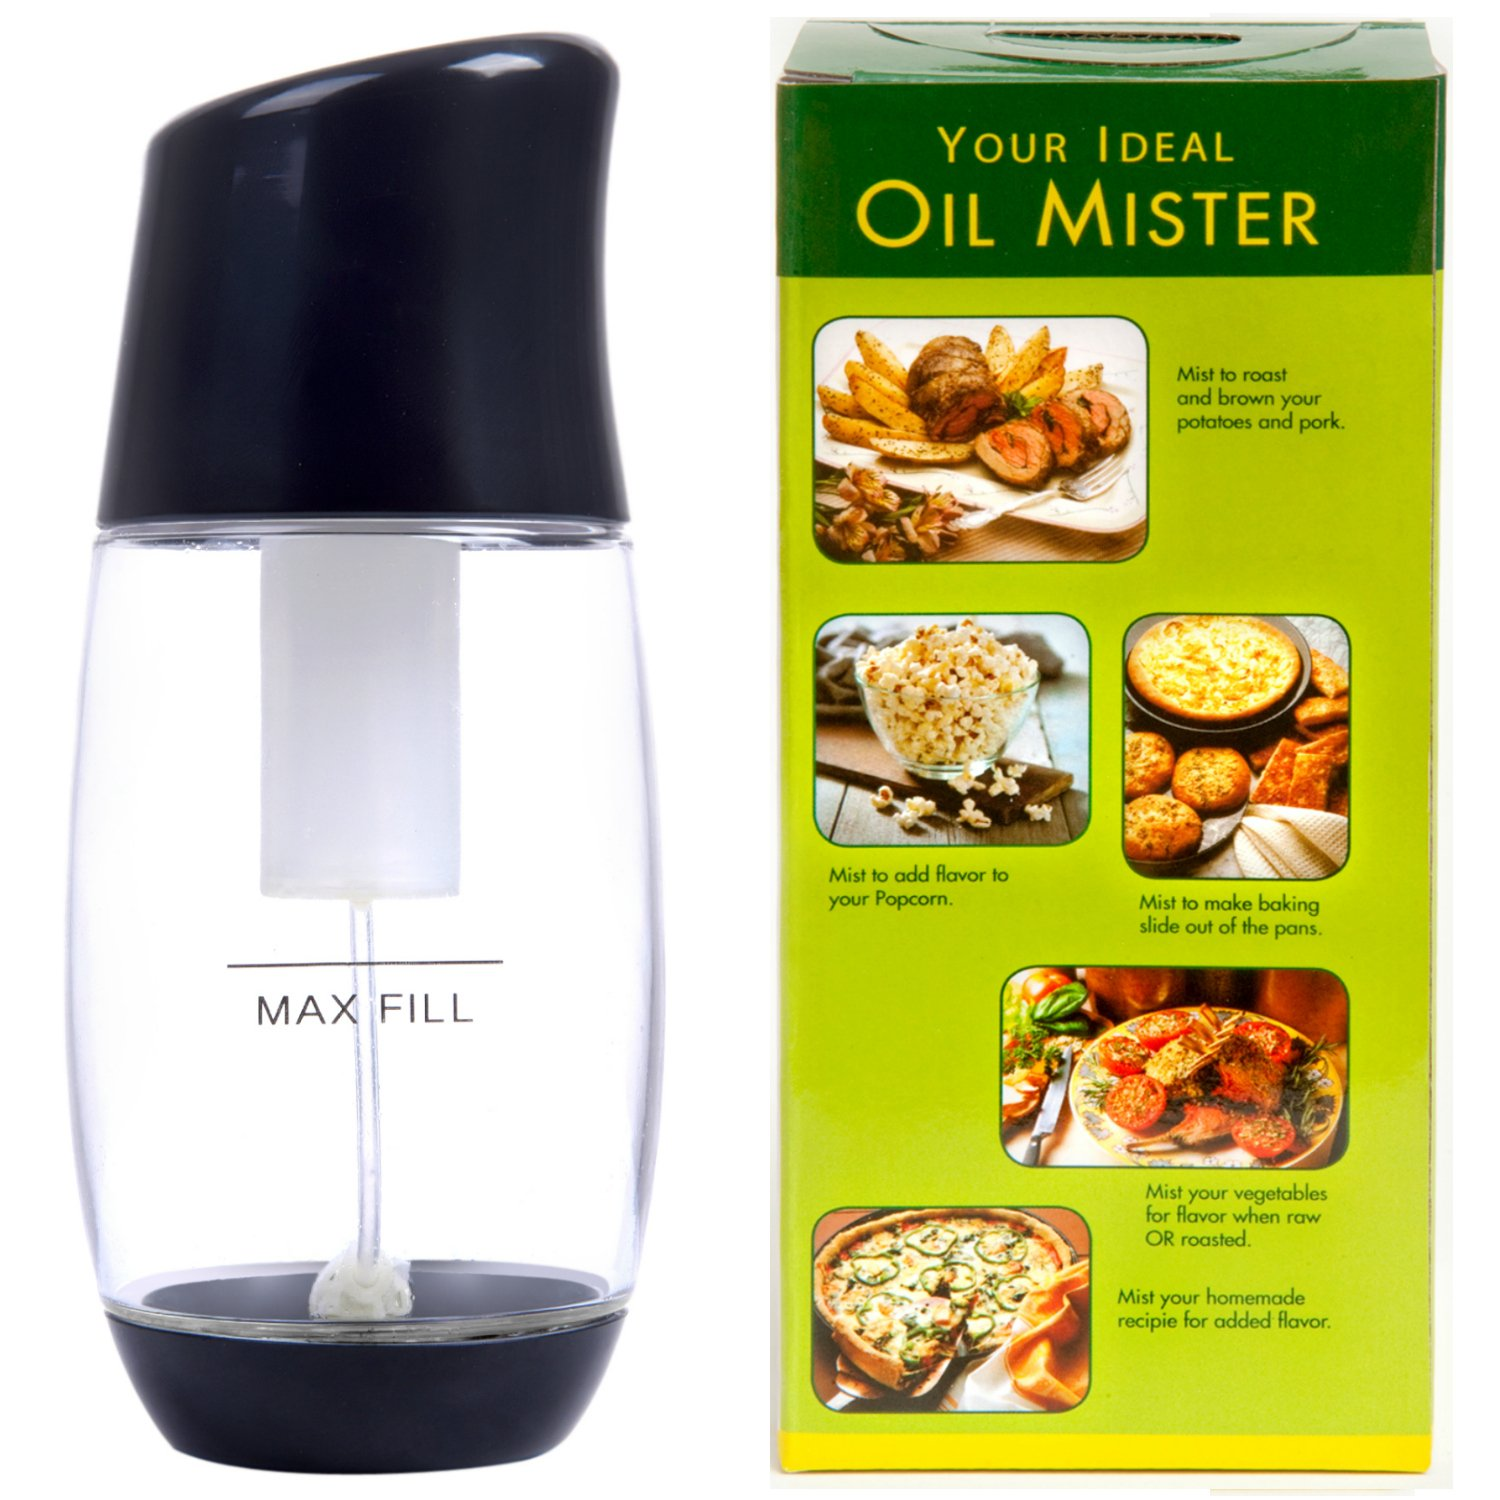 Ideal Olive Oil Mister - Premium Air Pressure Only Clog-Free Cooking Oil Sprayer for Salads, Baking, Grilling, Air Fryers by The Fine Life - Black